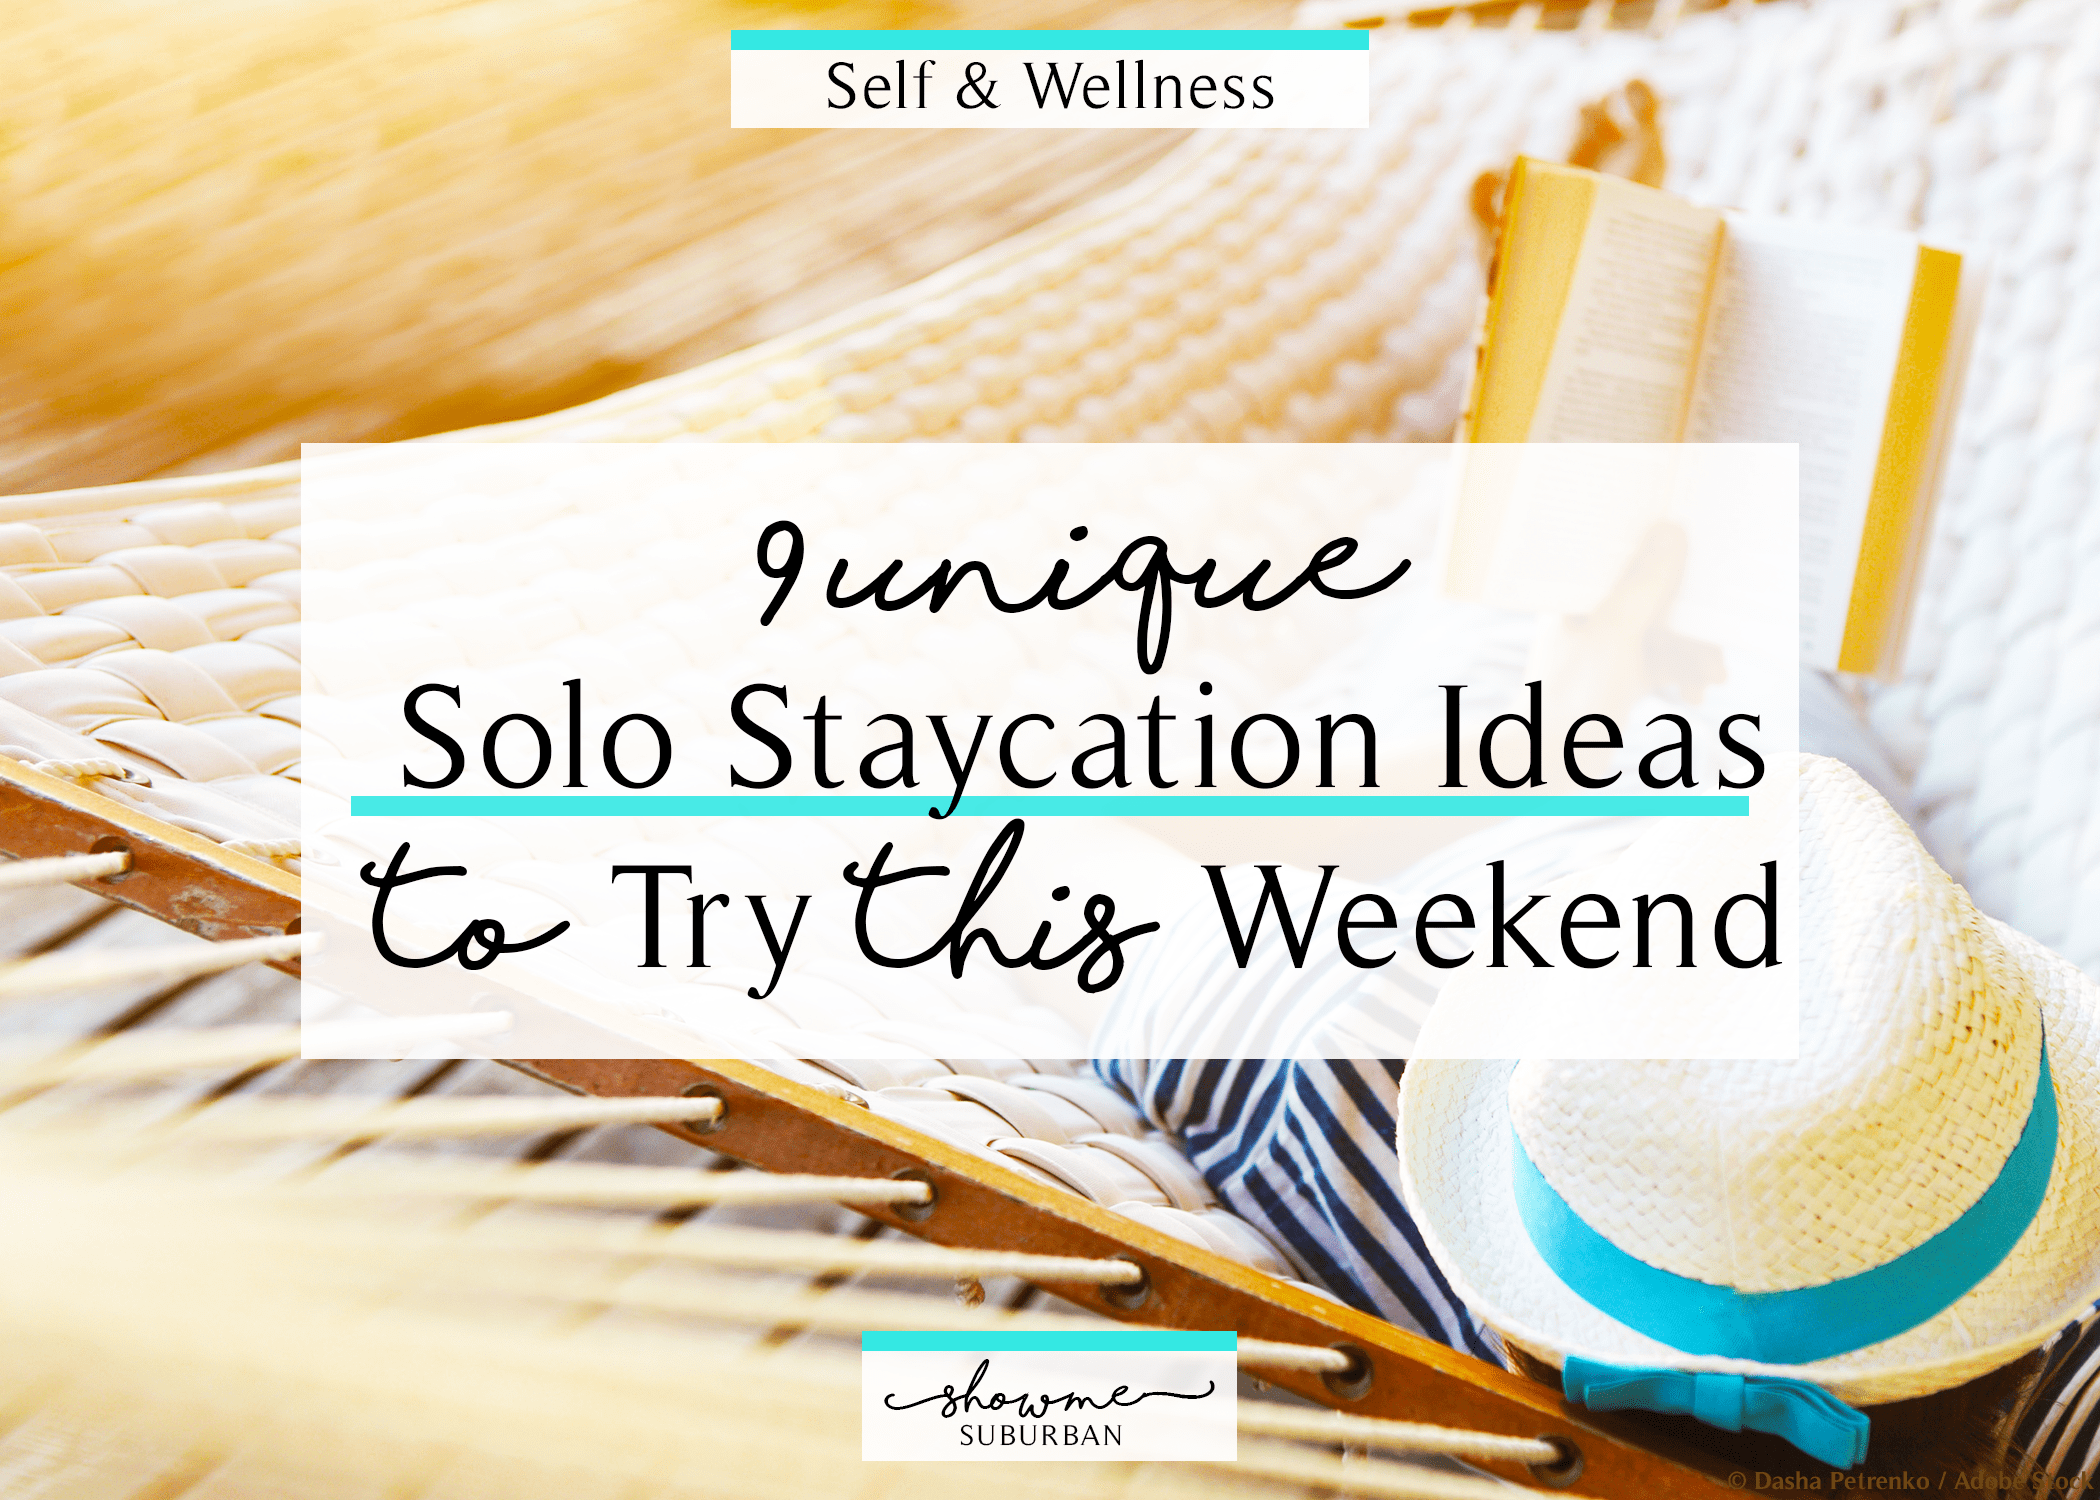 9 unique solo staycation ideas to try this weekend